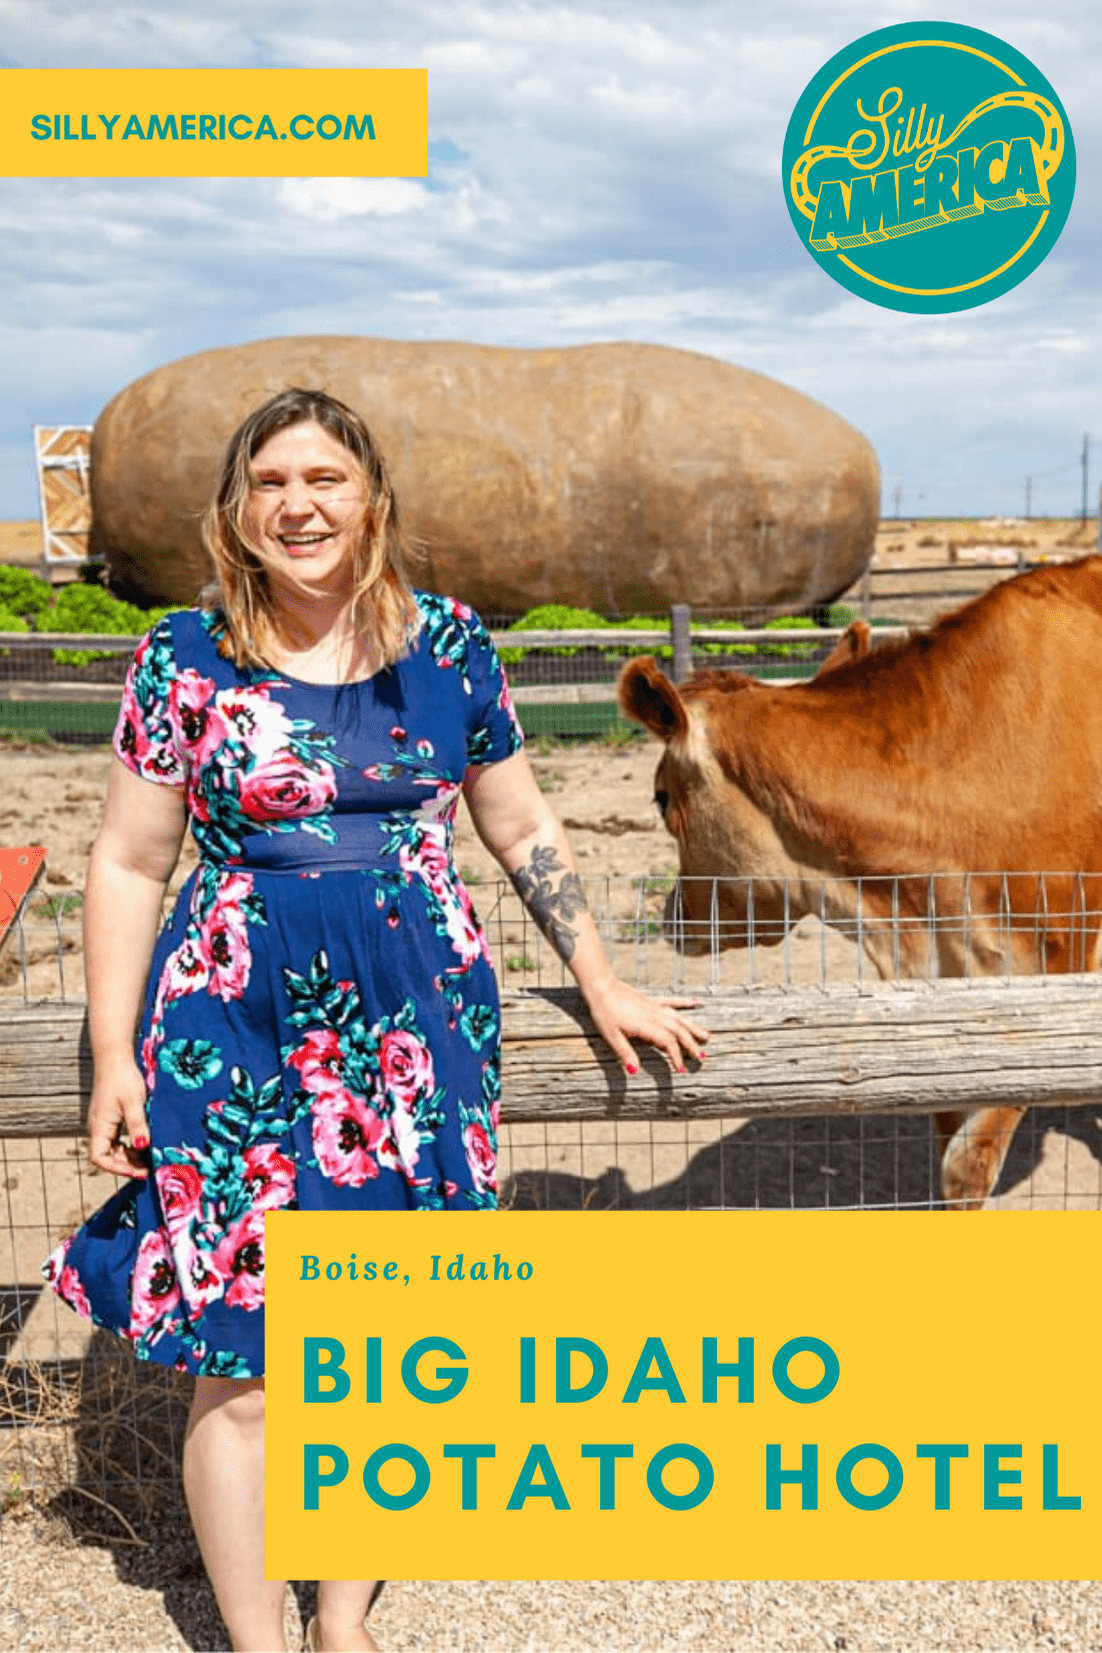 The Big Idaho Potato Hotel AirBNB in Boise, Idaho is an AirBNB made from a giant potato hosted by Kristie Wolfe. Spend the night in an Idaho roadside attraction. Add this weird AirBNB to your travel bucket list and road trip itinerary for a fun Idaho road trip!  #AirBNB #Potato #IdahoRoadsideAttractions #IdahoRoadsideAttraction #RoadsideAttractions #RoadsideAttraction #RoadTrip #IdahoRoadTrip  #IdahoRoadTripBucketLists #IdahoBucketList #ThingsToDoInIdaho #weirdroadsideattractions